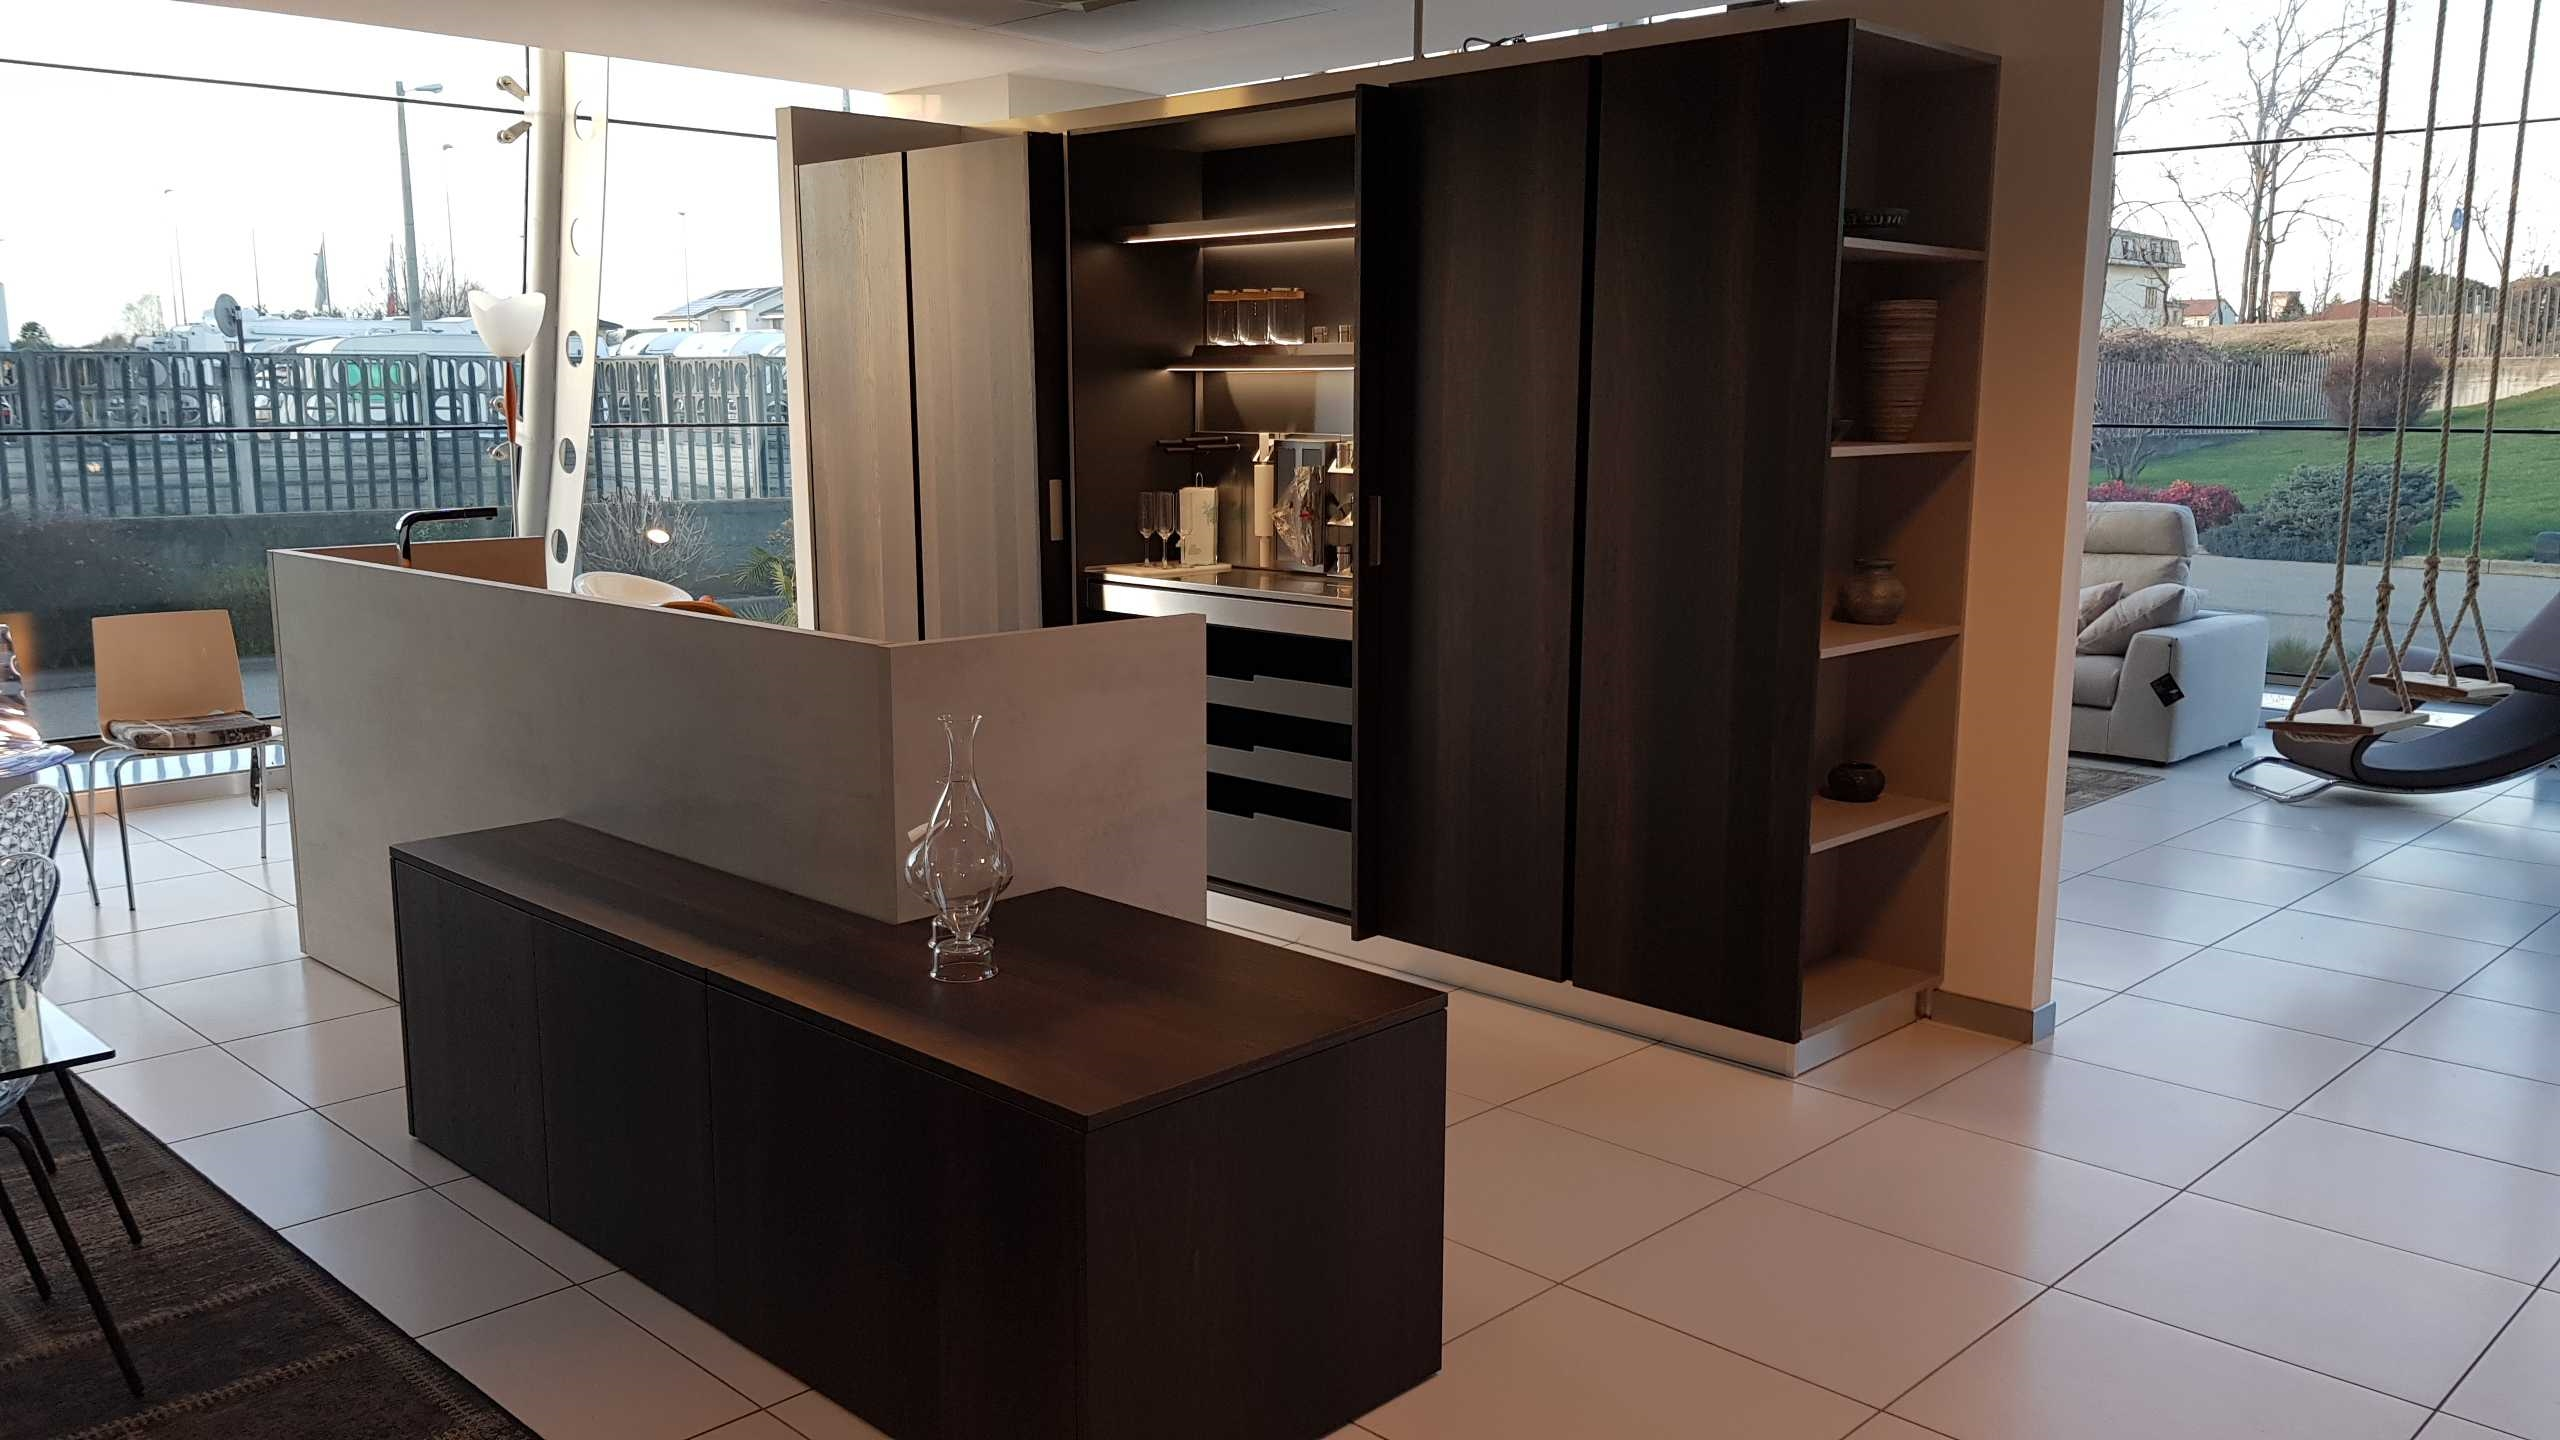 Outlet Cucine Campania. Emejing Outlet Cucine Campania Images ...